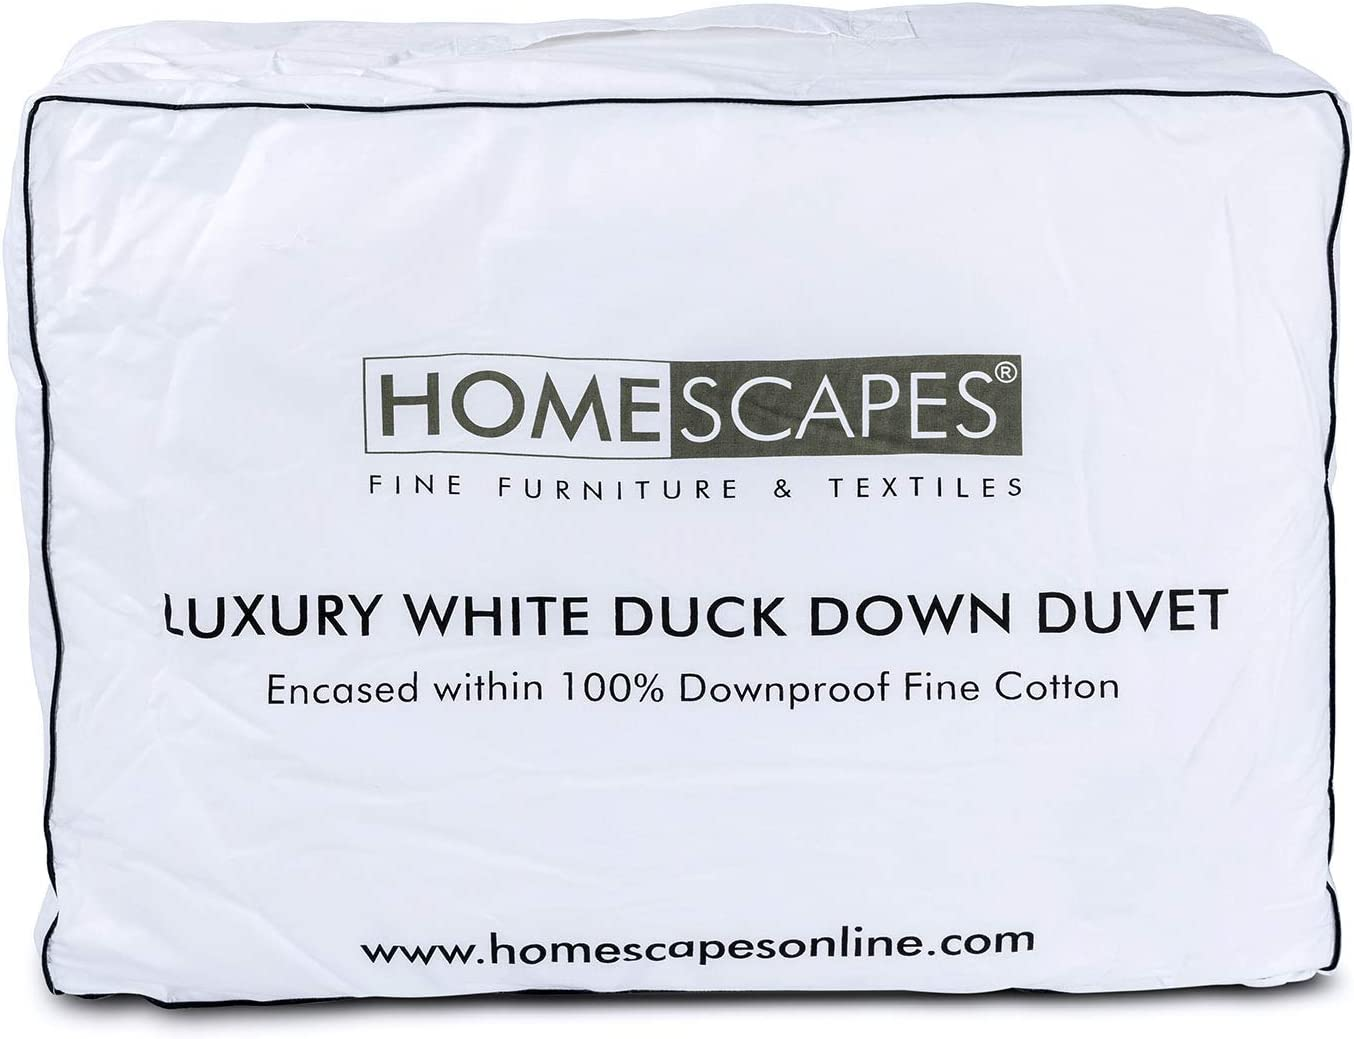 Homescapes 100/% Cotton Anti Dust Mite /& Down Proof Cover 13.5 Tog Washable at Home Range Luxury New White Duck Feather /& Down Duvet Box Baffle Construction Single Anti Allergen